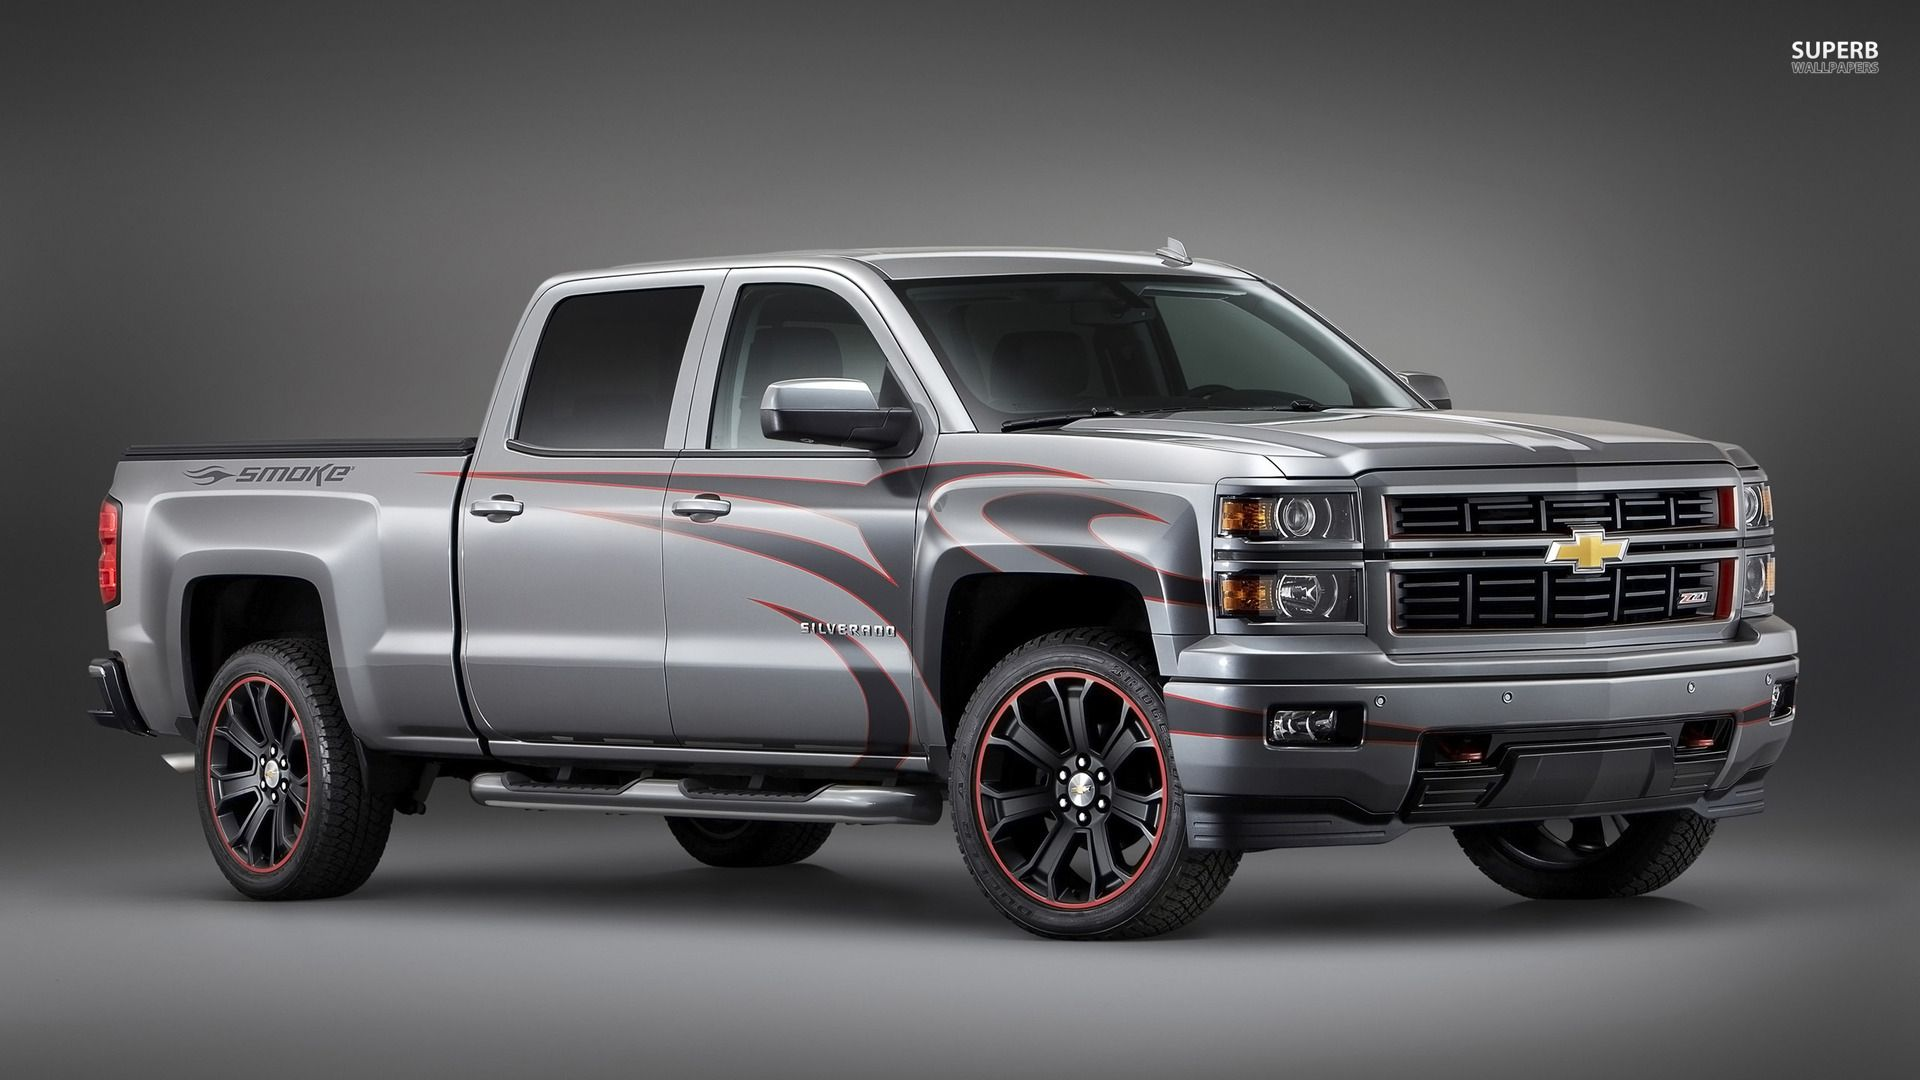 Lifted White Chevy Trucks Wallpaper Au White Chevy Truck Graphics 1920x1080 Download Hd Wallpaper Wallpapertip